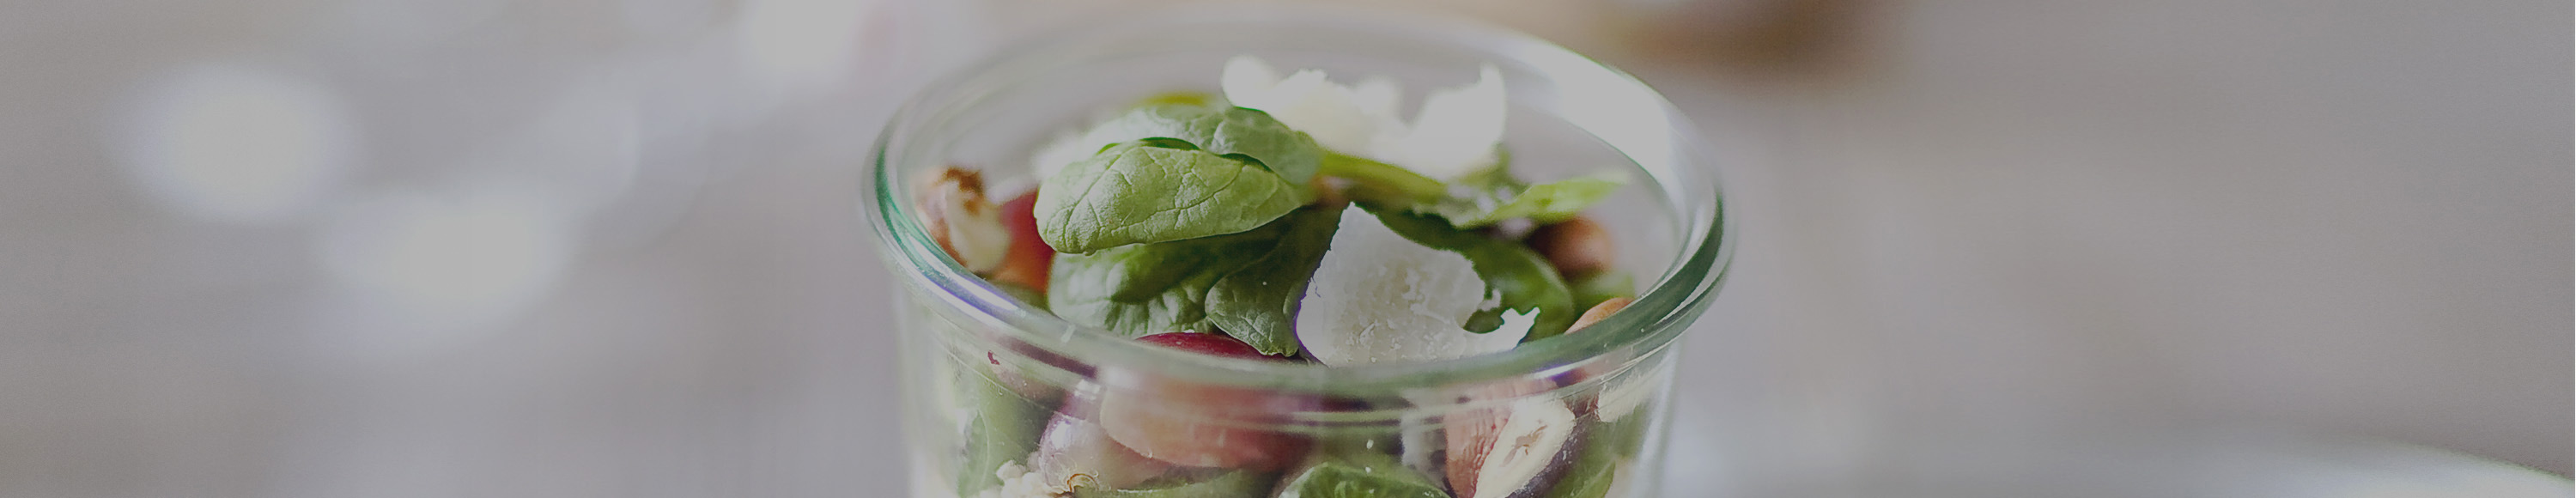 Fancy a salad with NERGI®? More recipes here!